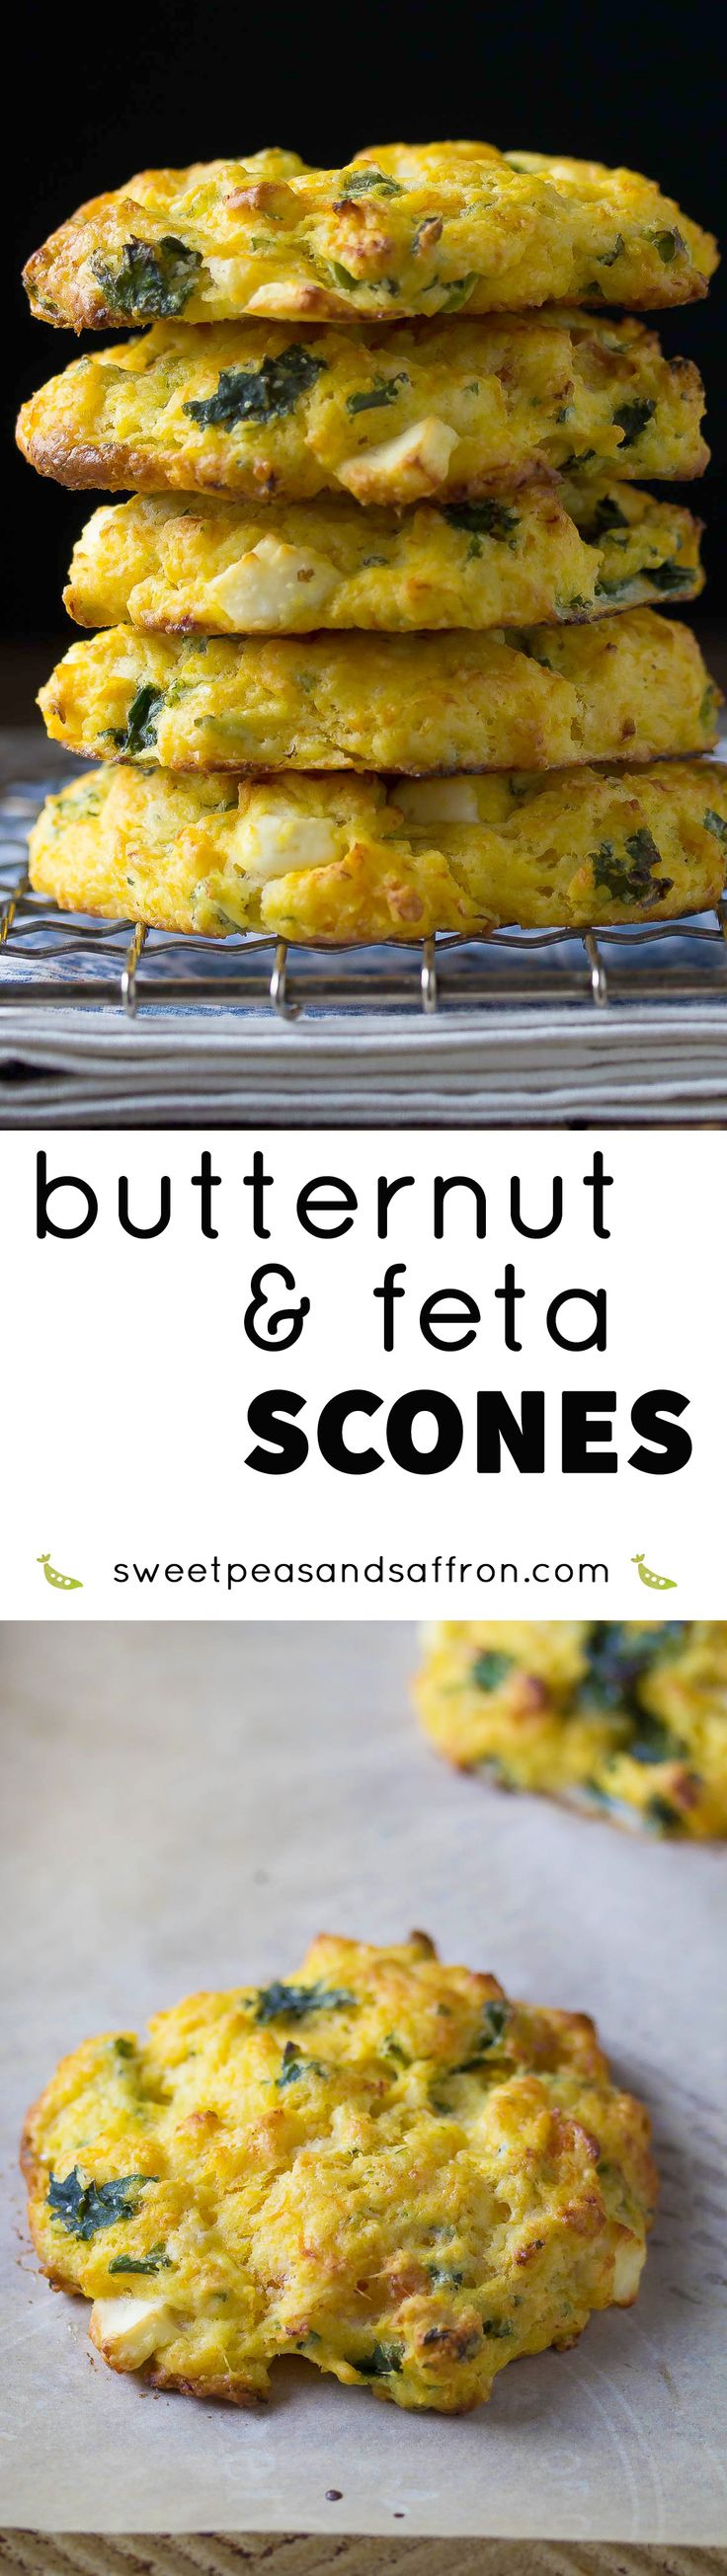 This healthier scone recipe contains an entire cup of pureed butternut squash and spinach,  as well as salty feta cheese.  A delicious savory twist on a traditional scone recipe!